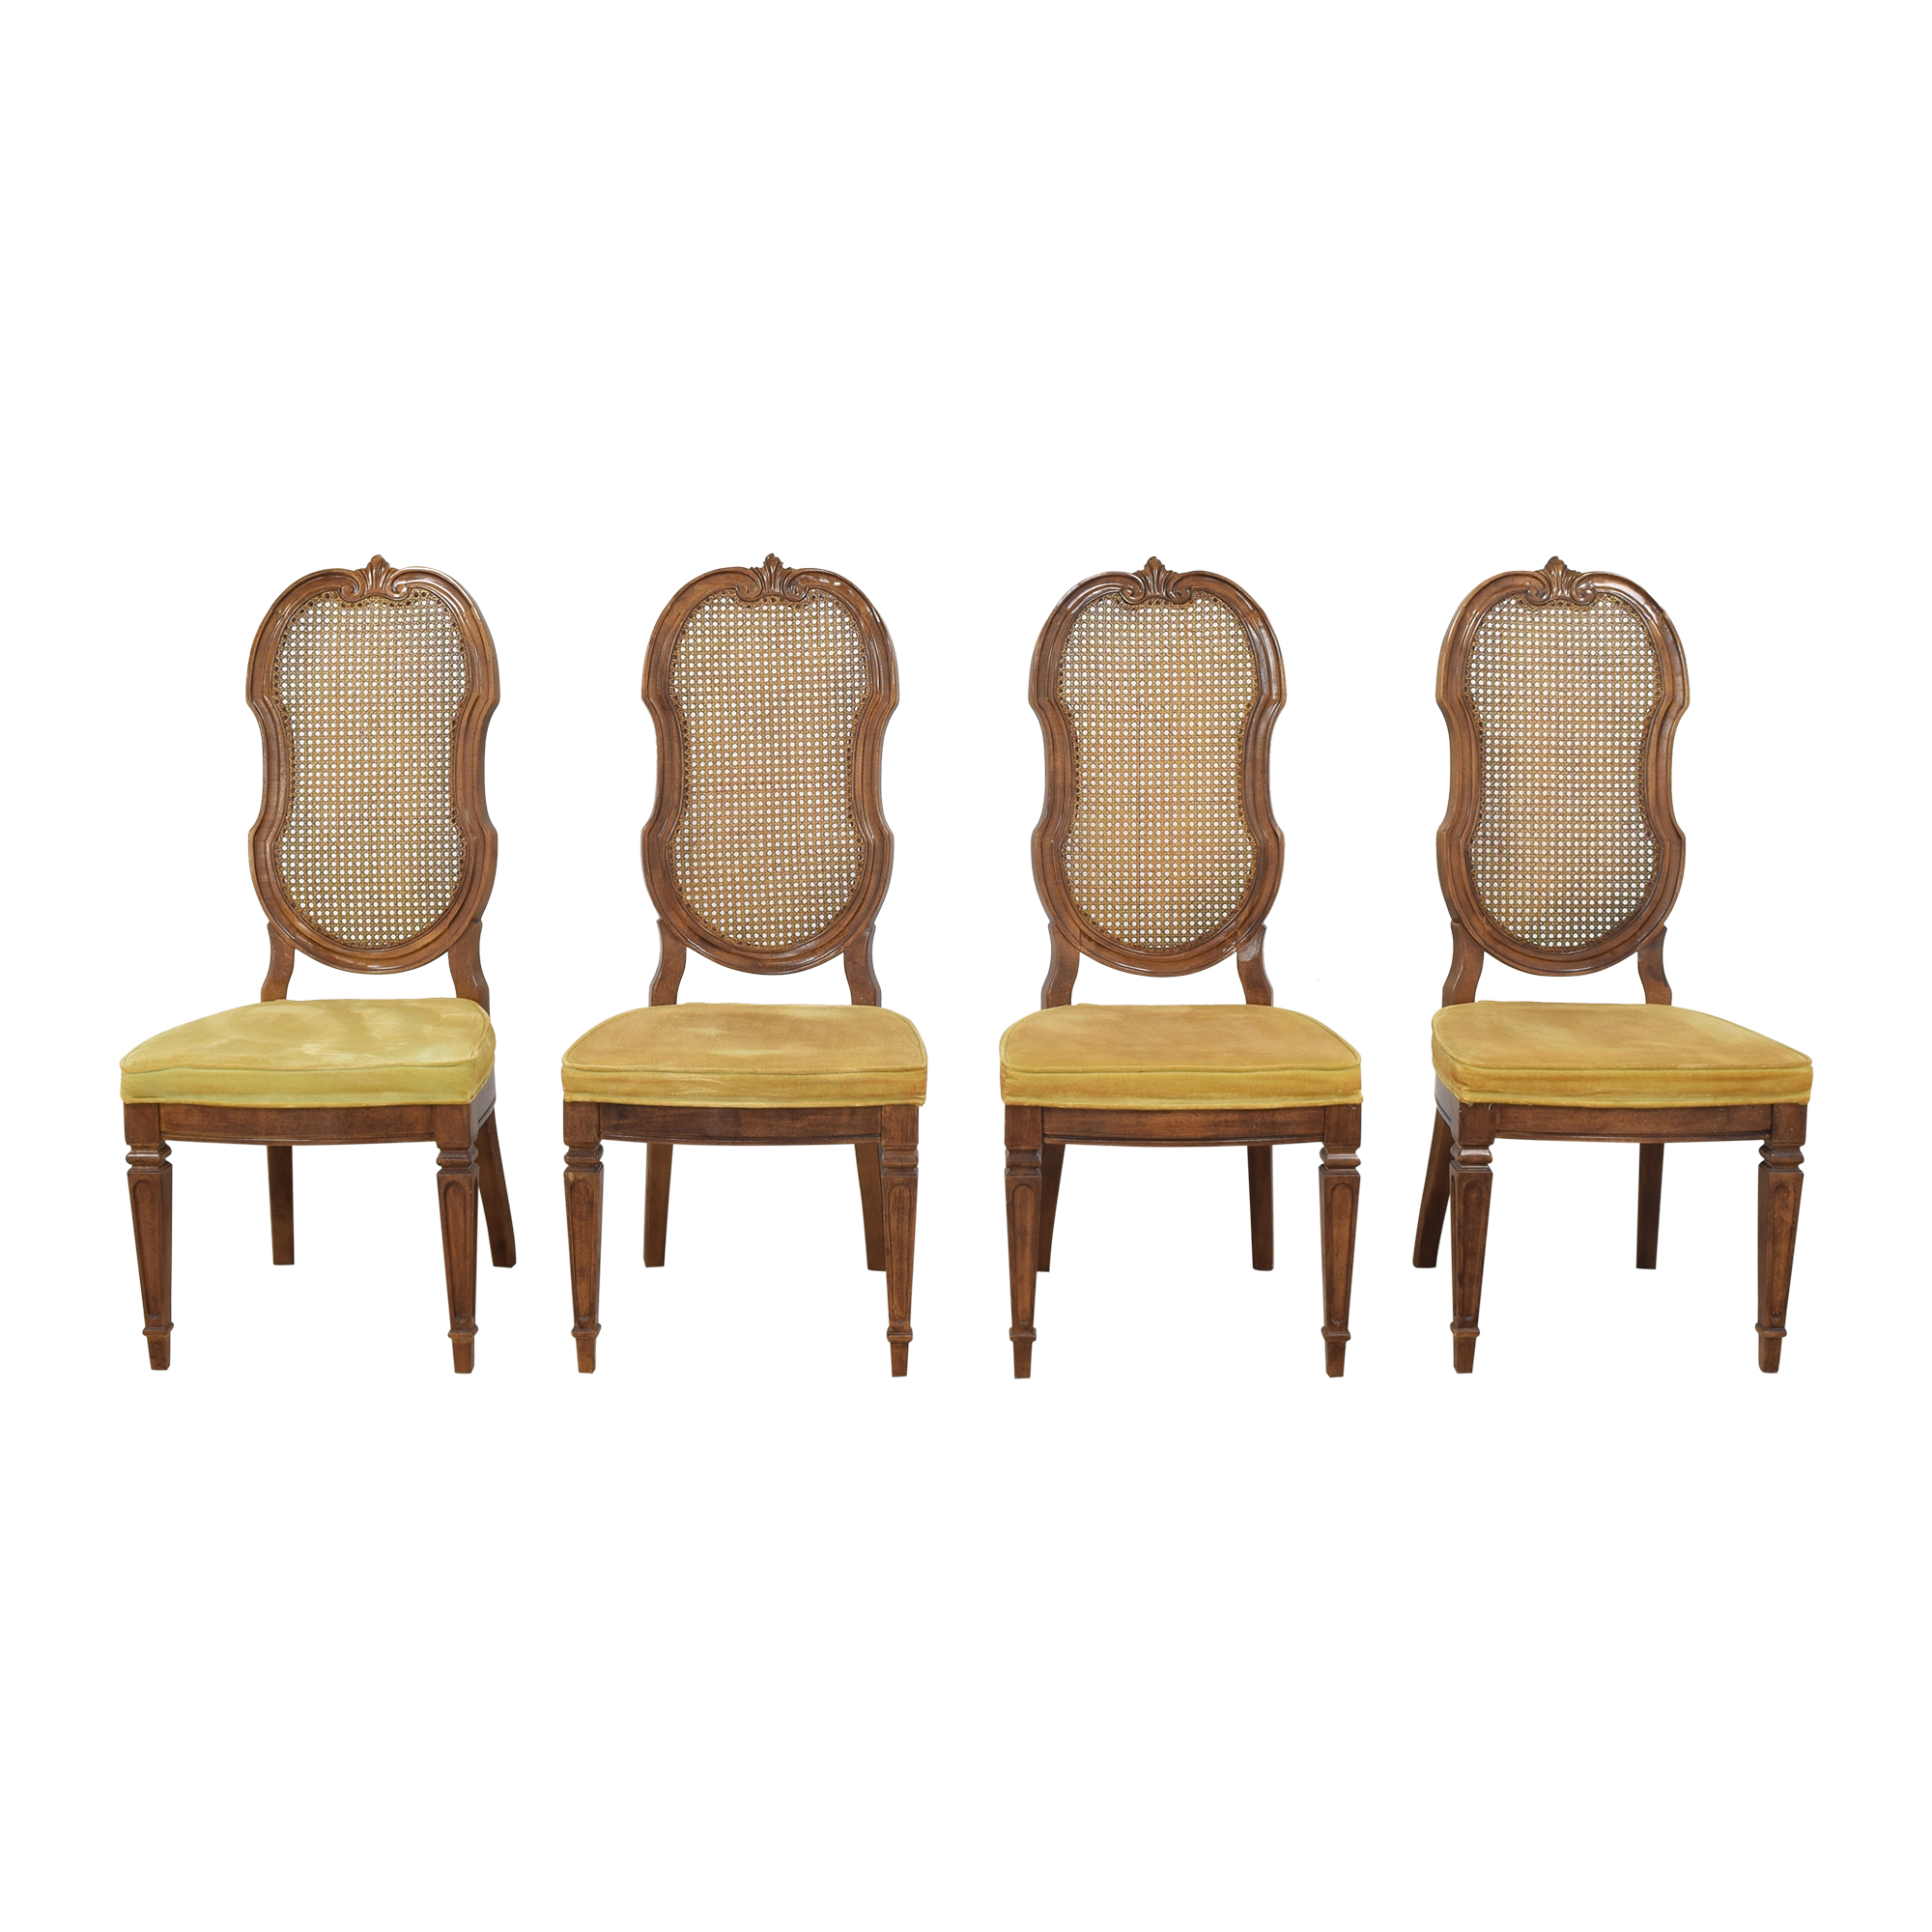 Thomasville Italian Provincial Style Dining Chairs / Chairs